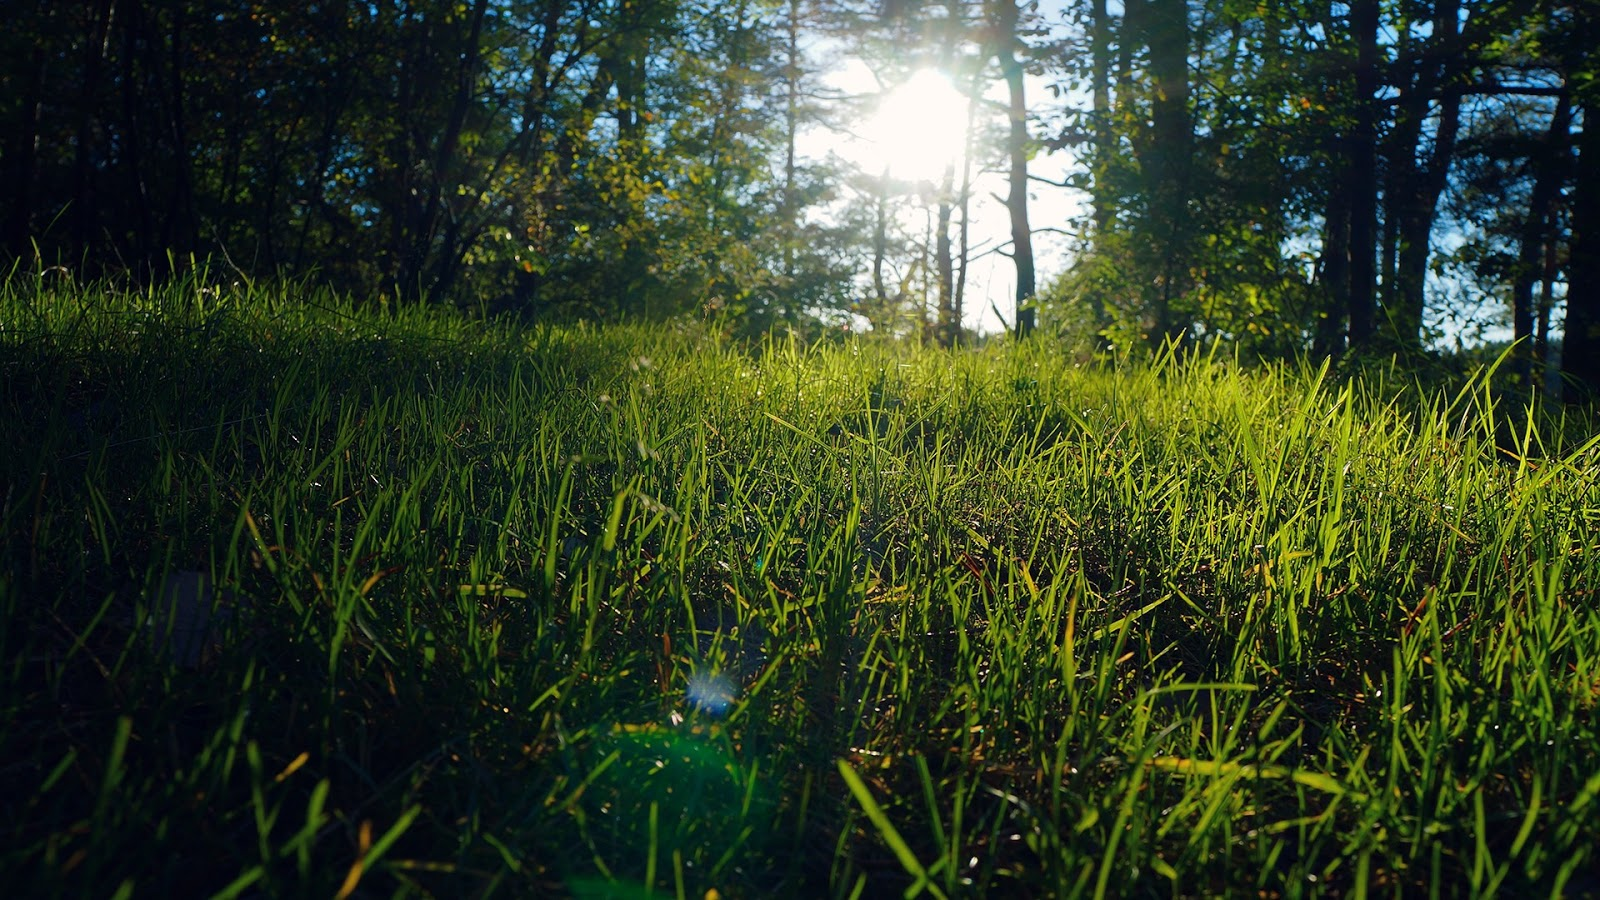 Sunlight in the grassland